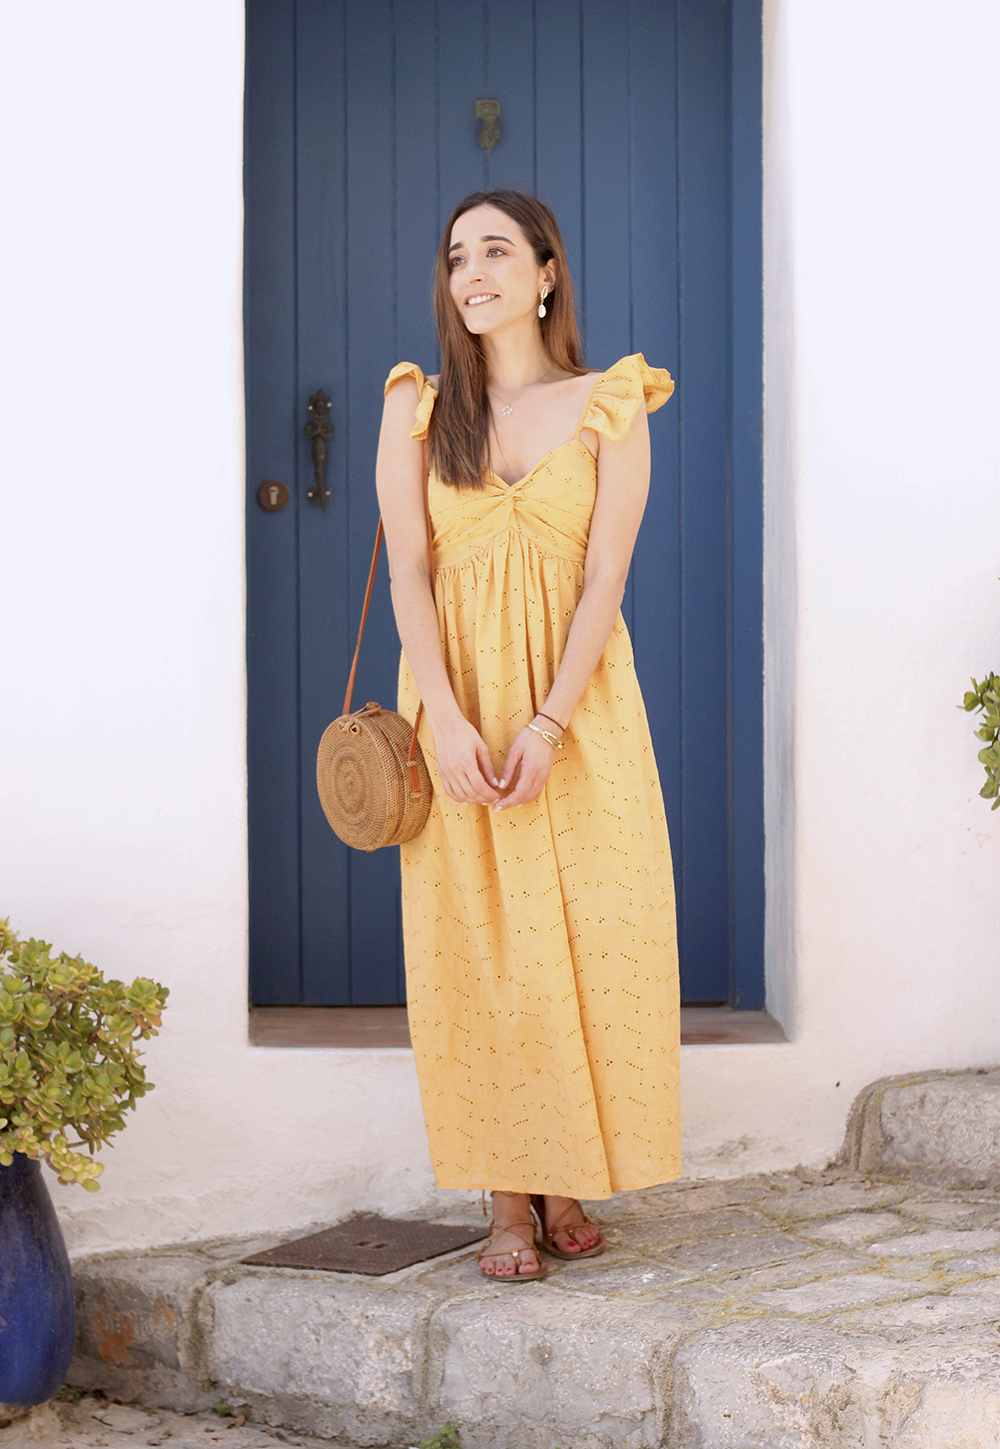 mustard embroidered midi dress straw bag street style outfit 2019 vacation ibiza11